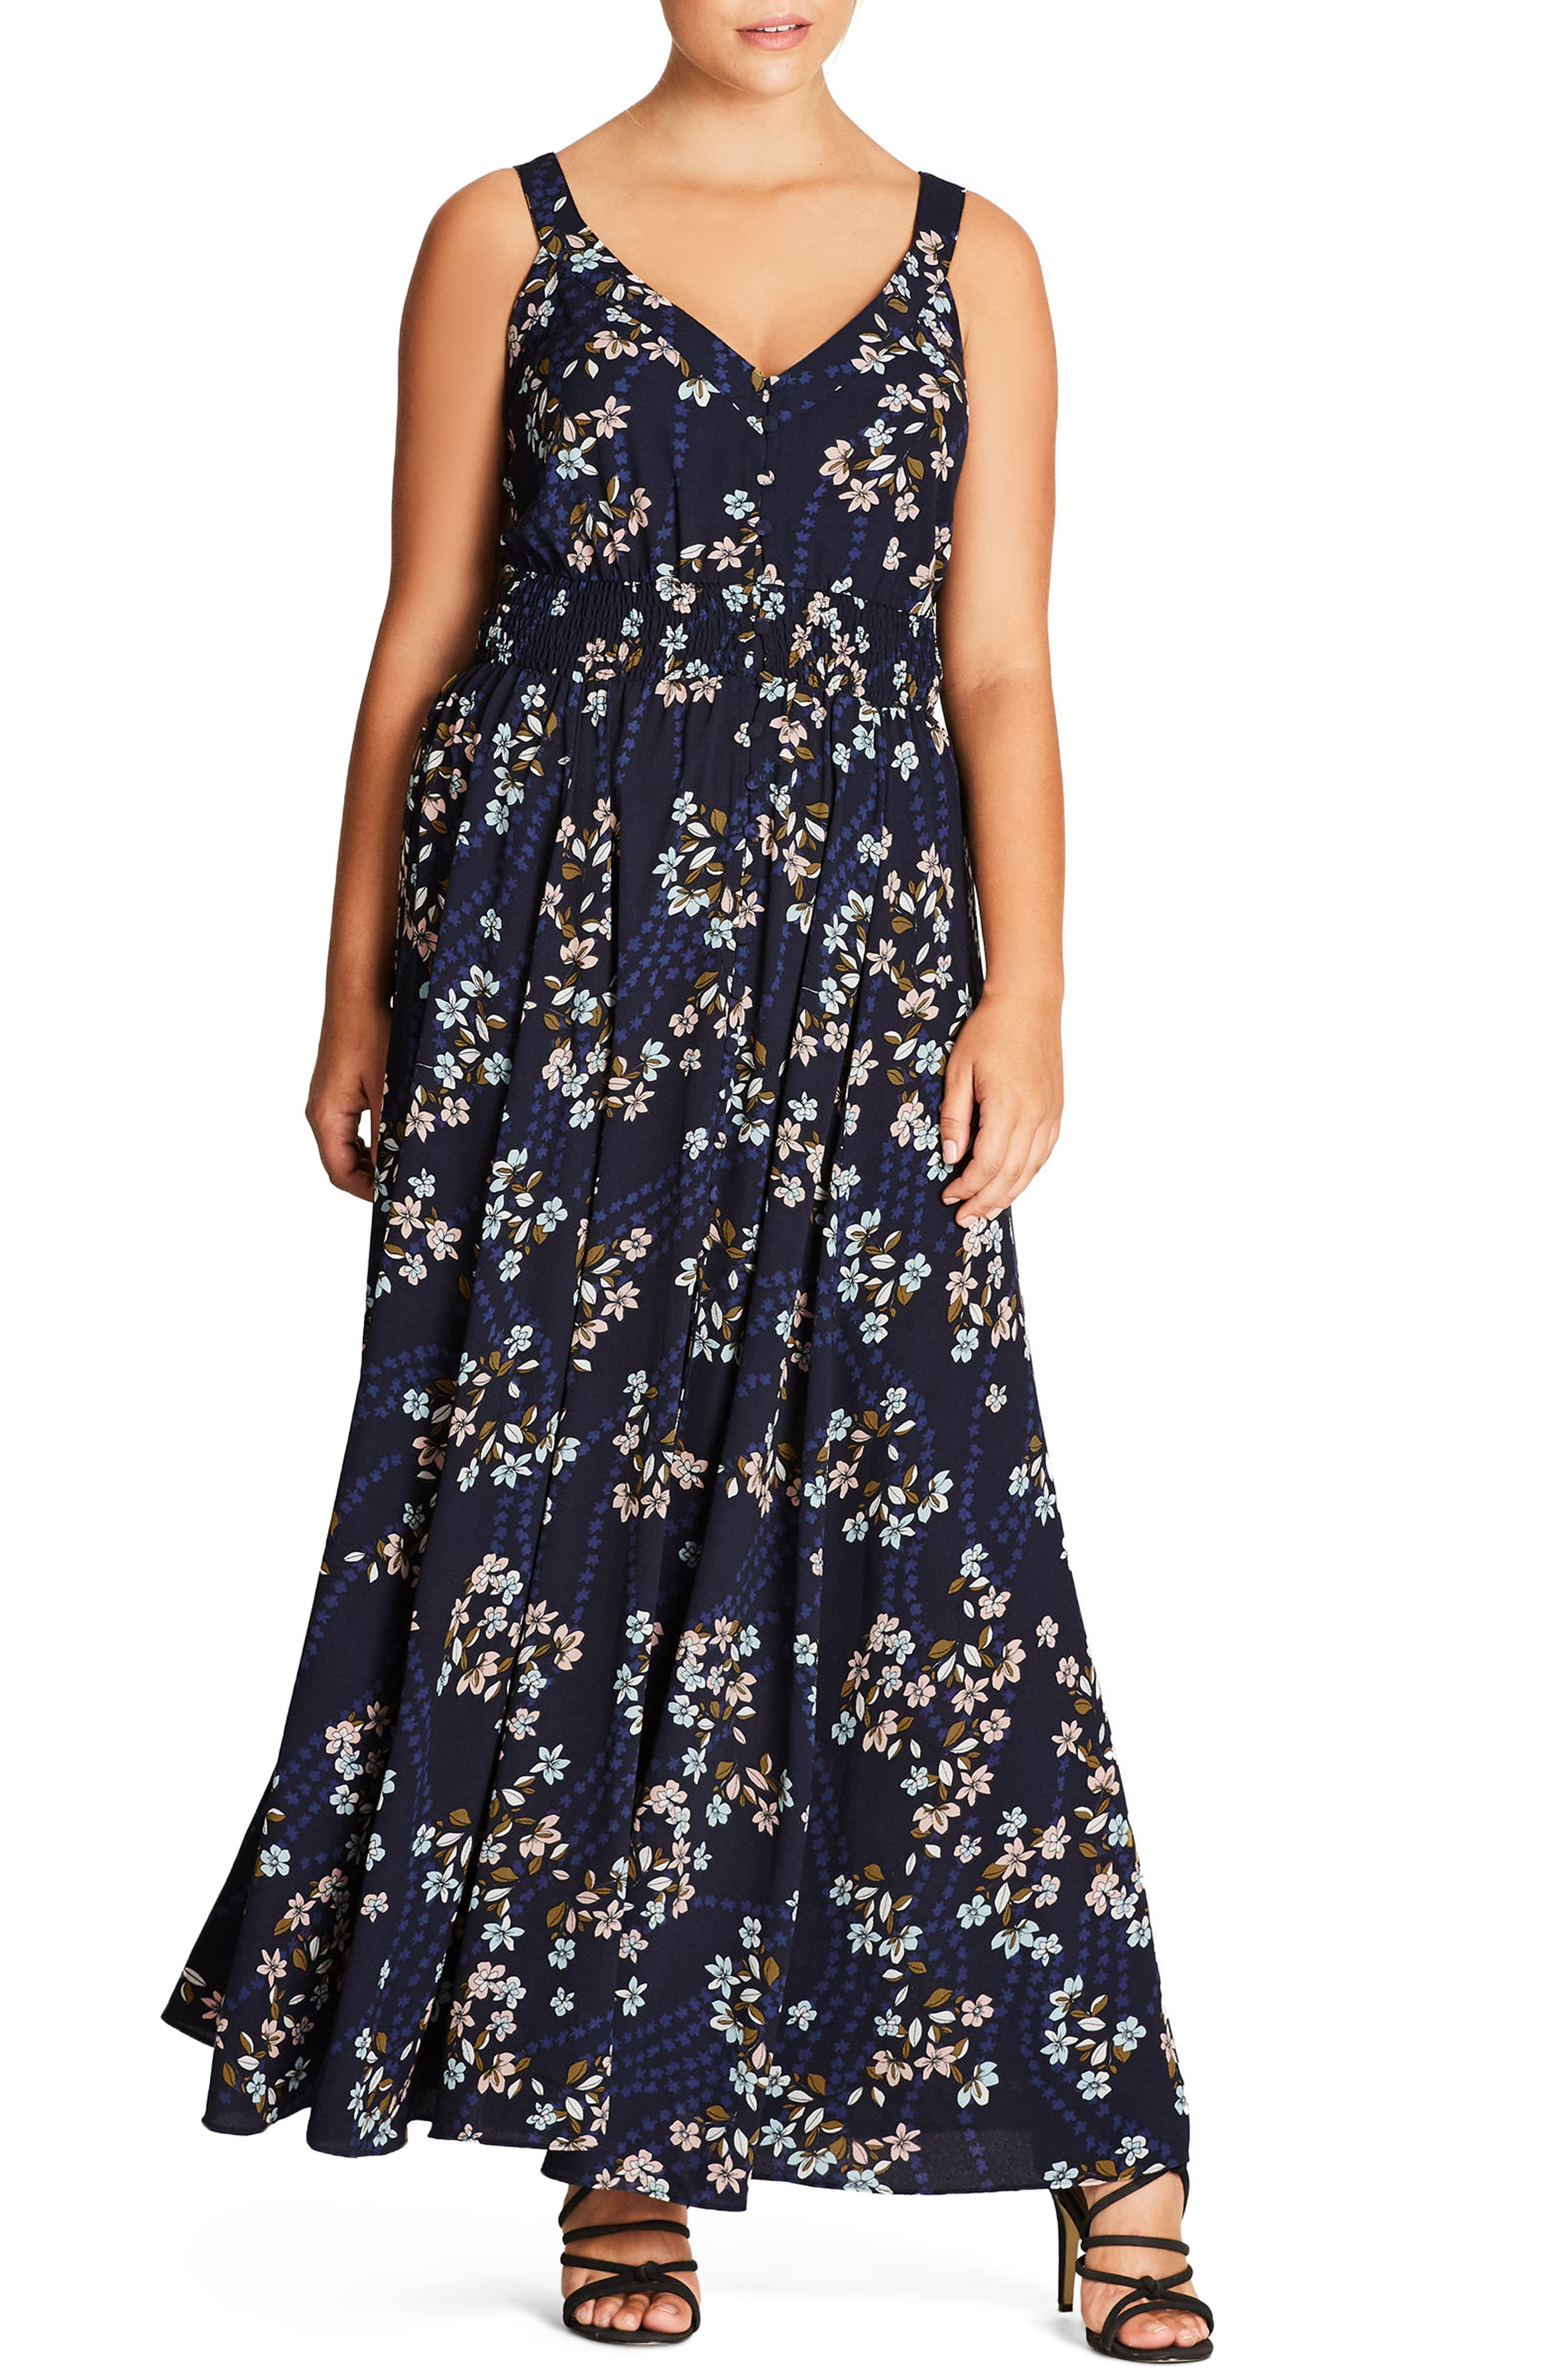 City Chic I Found You Floral Maxi Dress (Plus Size)